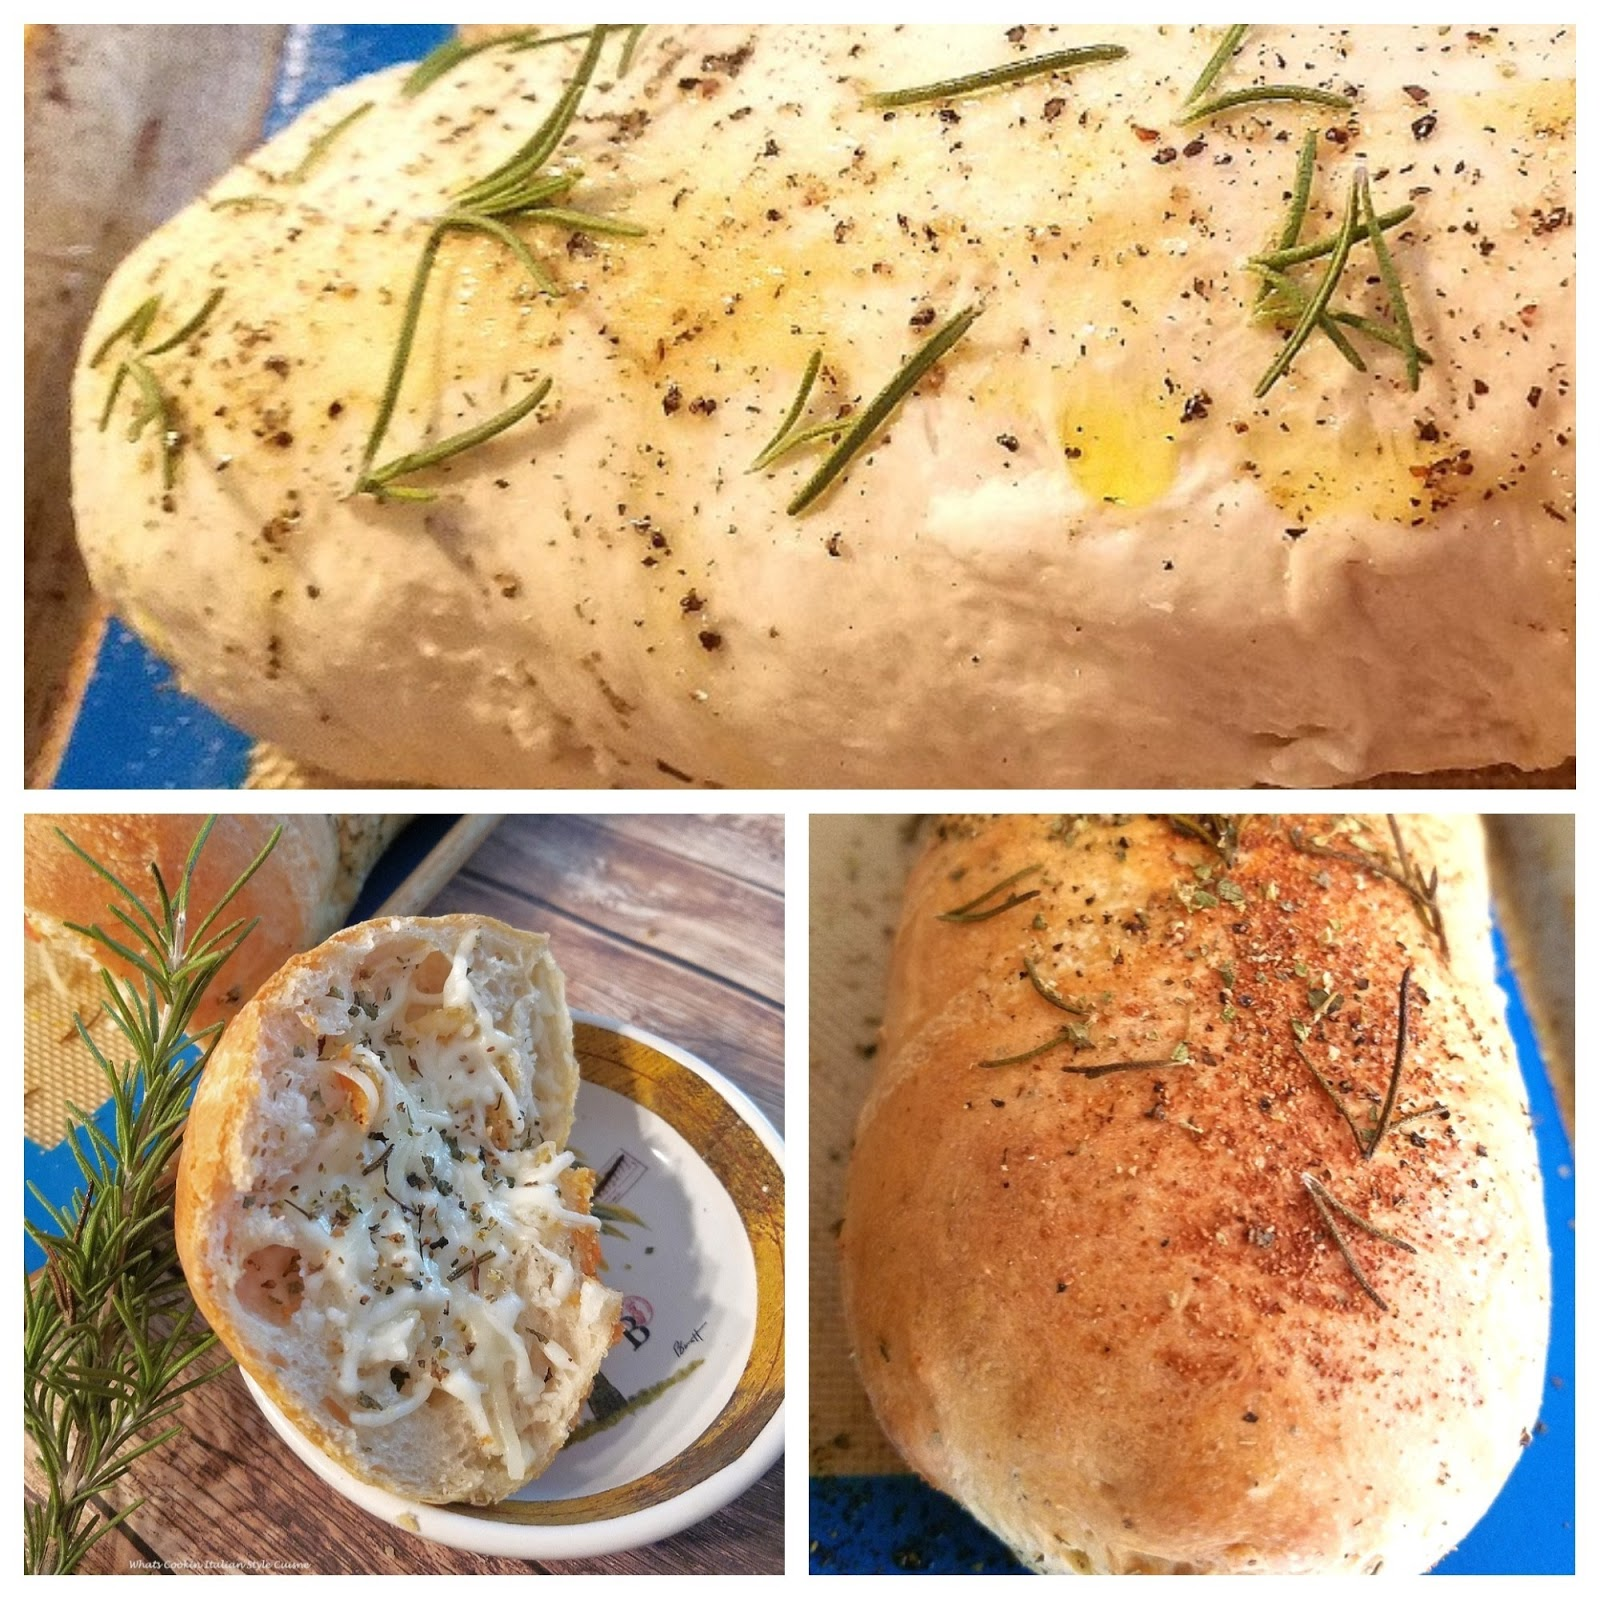 This is delicious pizza dough stuffed with cheese and fresh herbs. A  homemade bread dough that was mom's recipe. This is called a focaccia and italian herb bread that is stuffed with cheese. Rosemary is a main herb flavored in this bread along with black pepper and fresh basil.